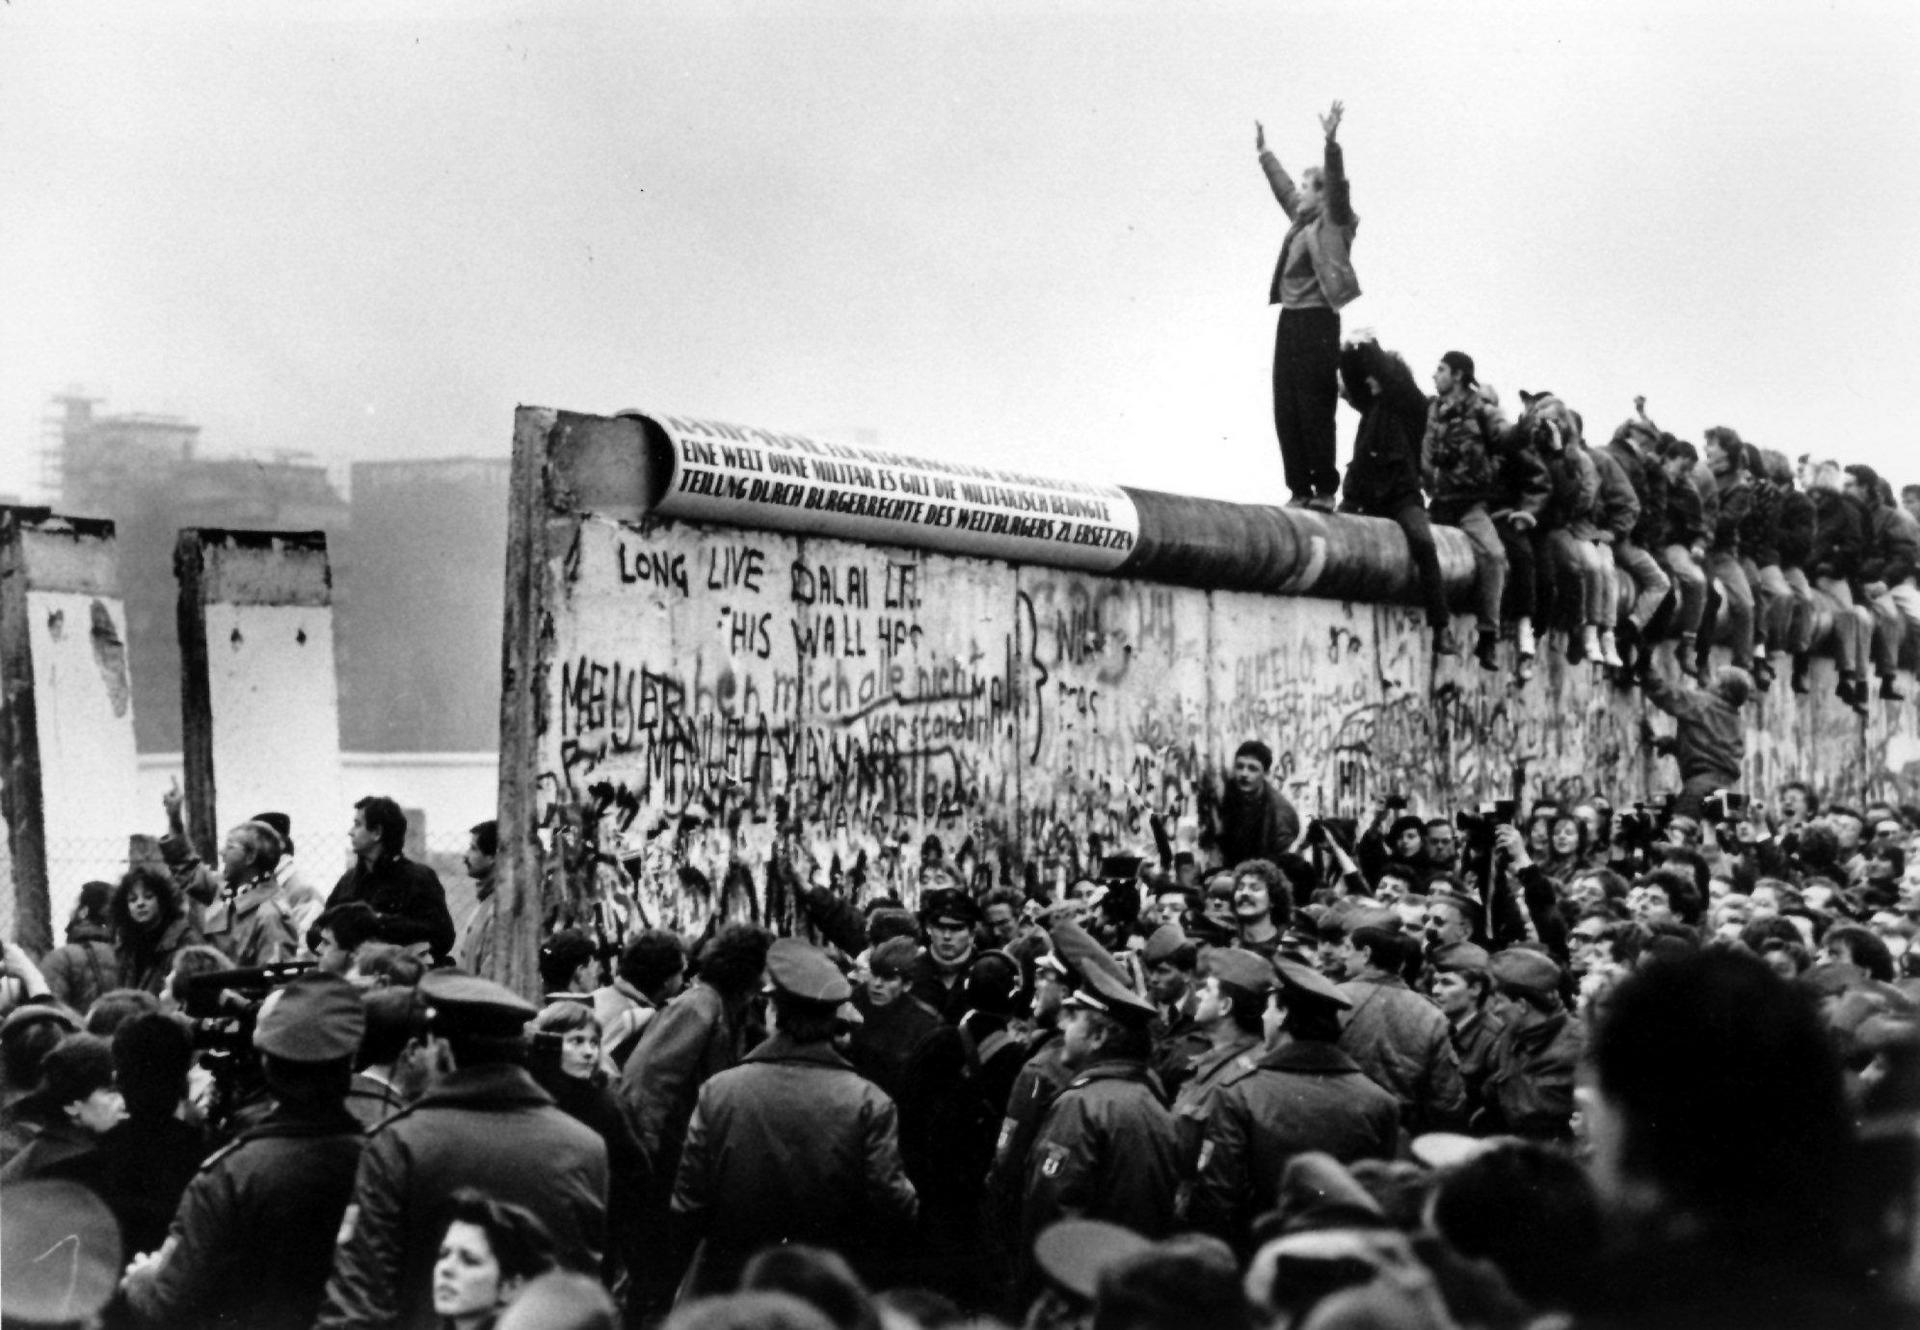 Photograph from fall of Berlin Wall